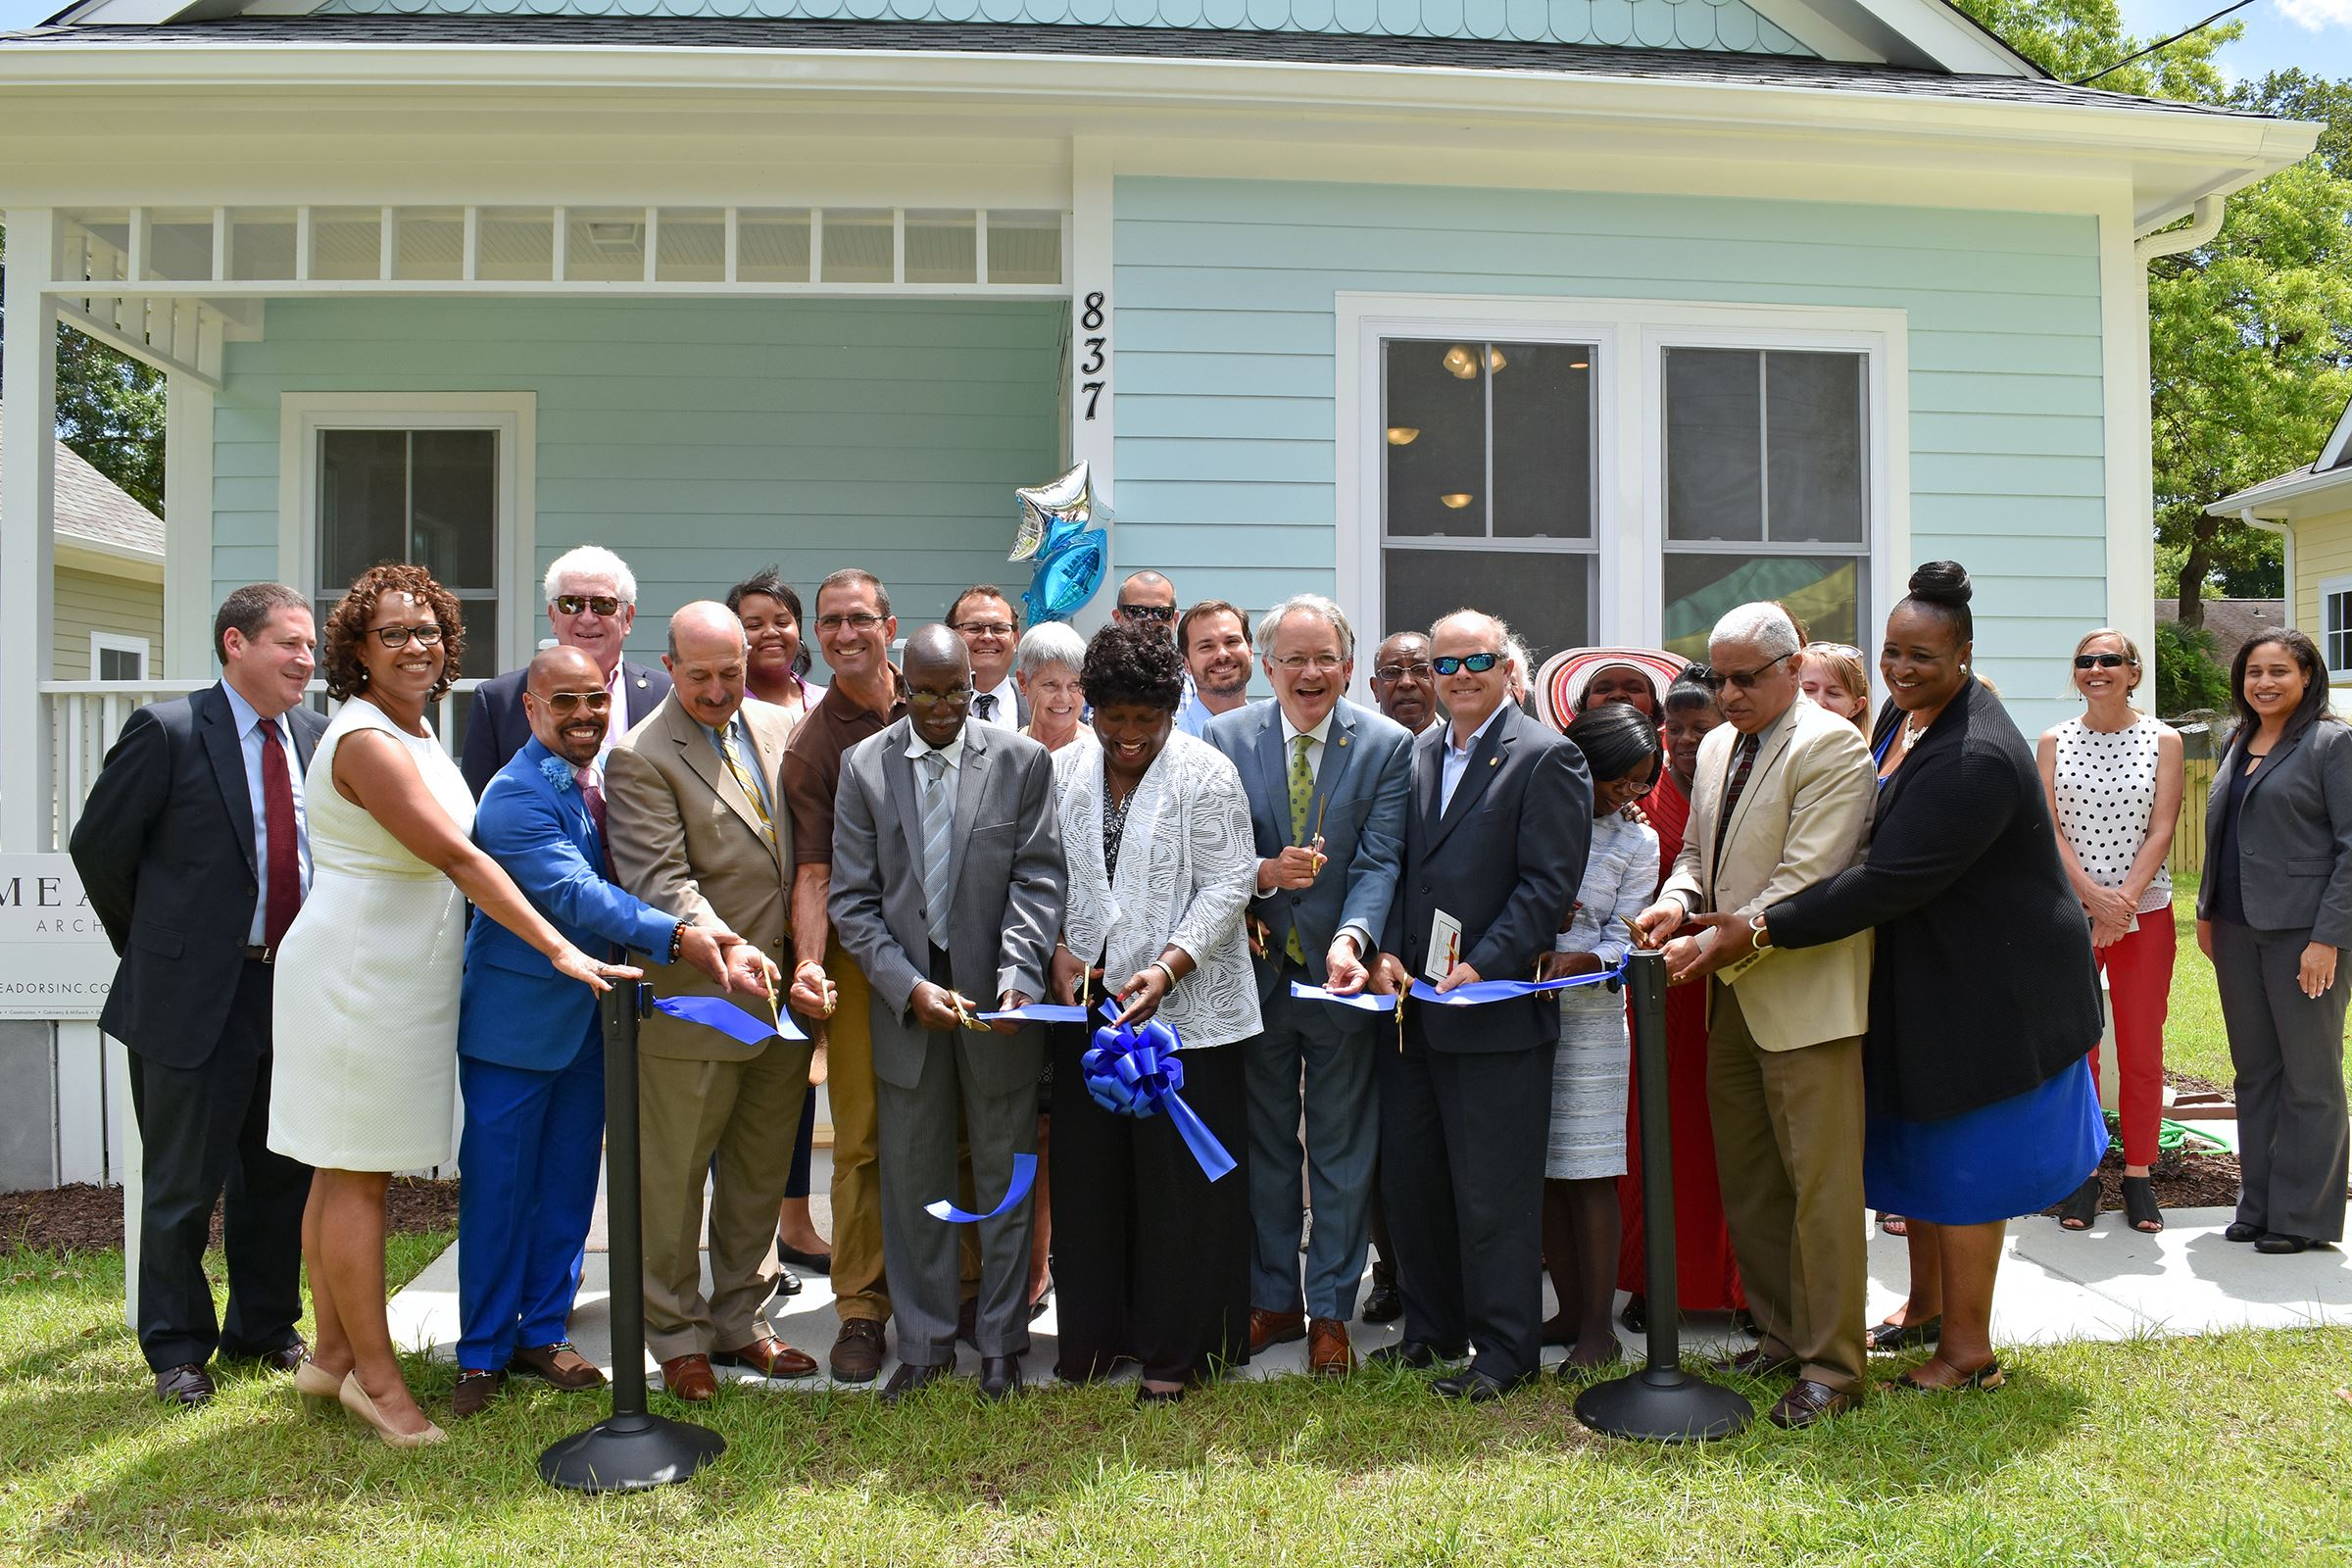 A newly constructed affordable home in west ashley